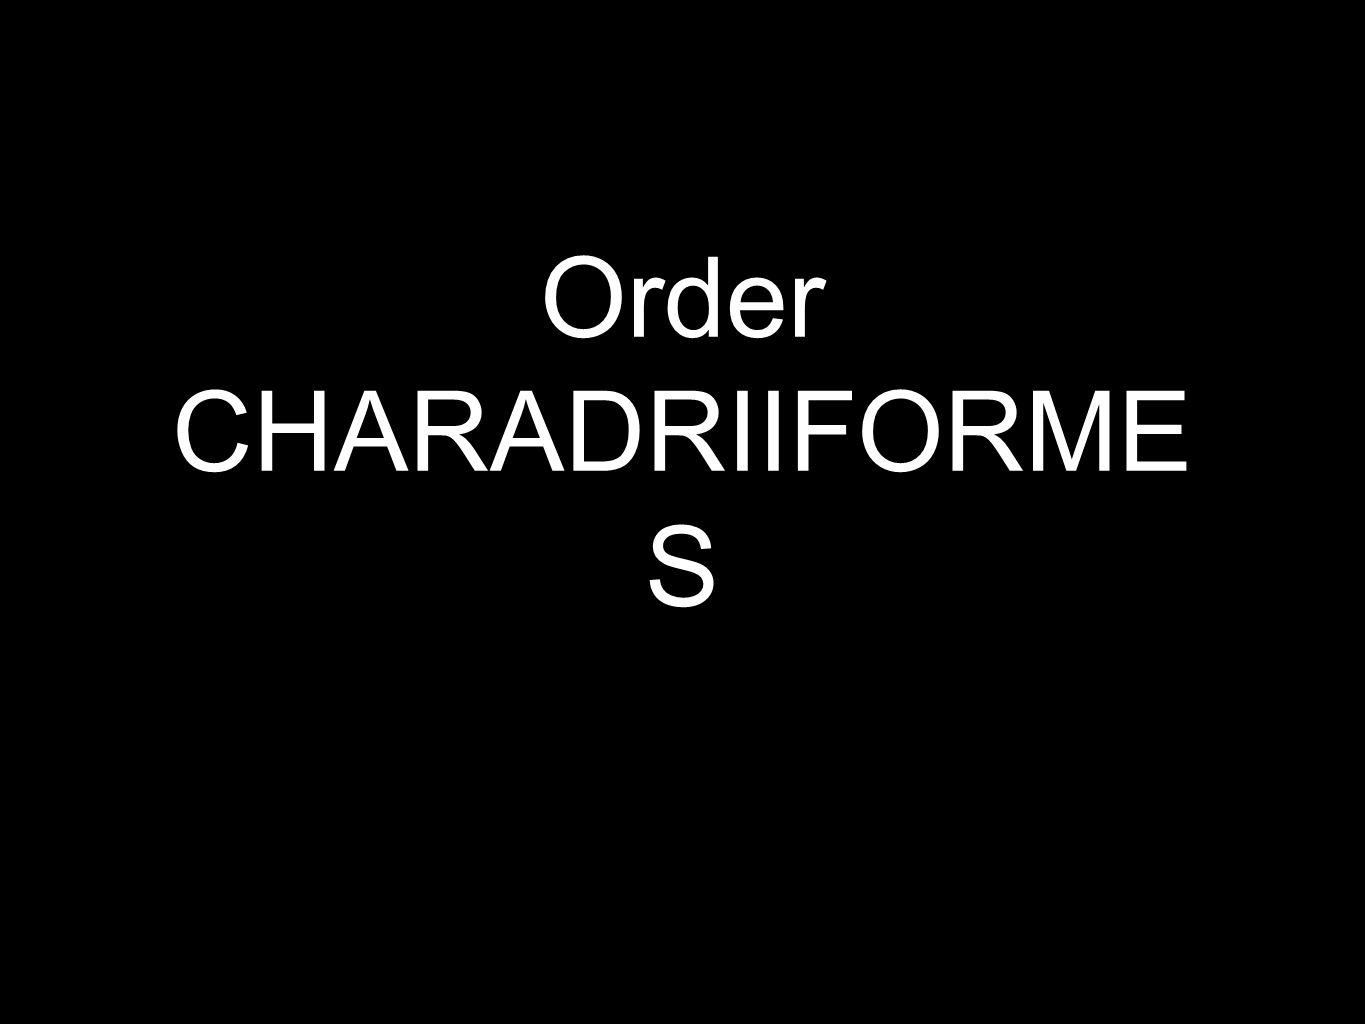 Order CHARADRIIFORME S